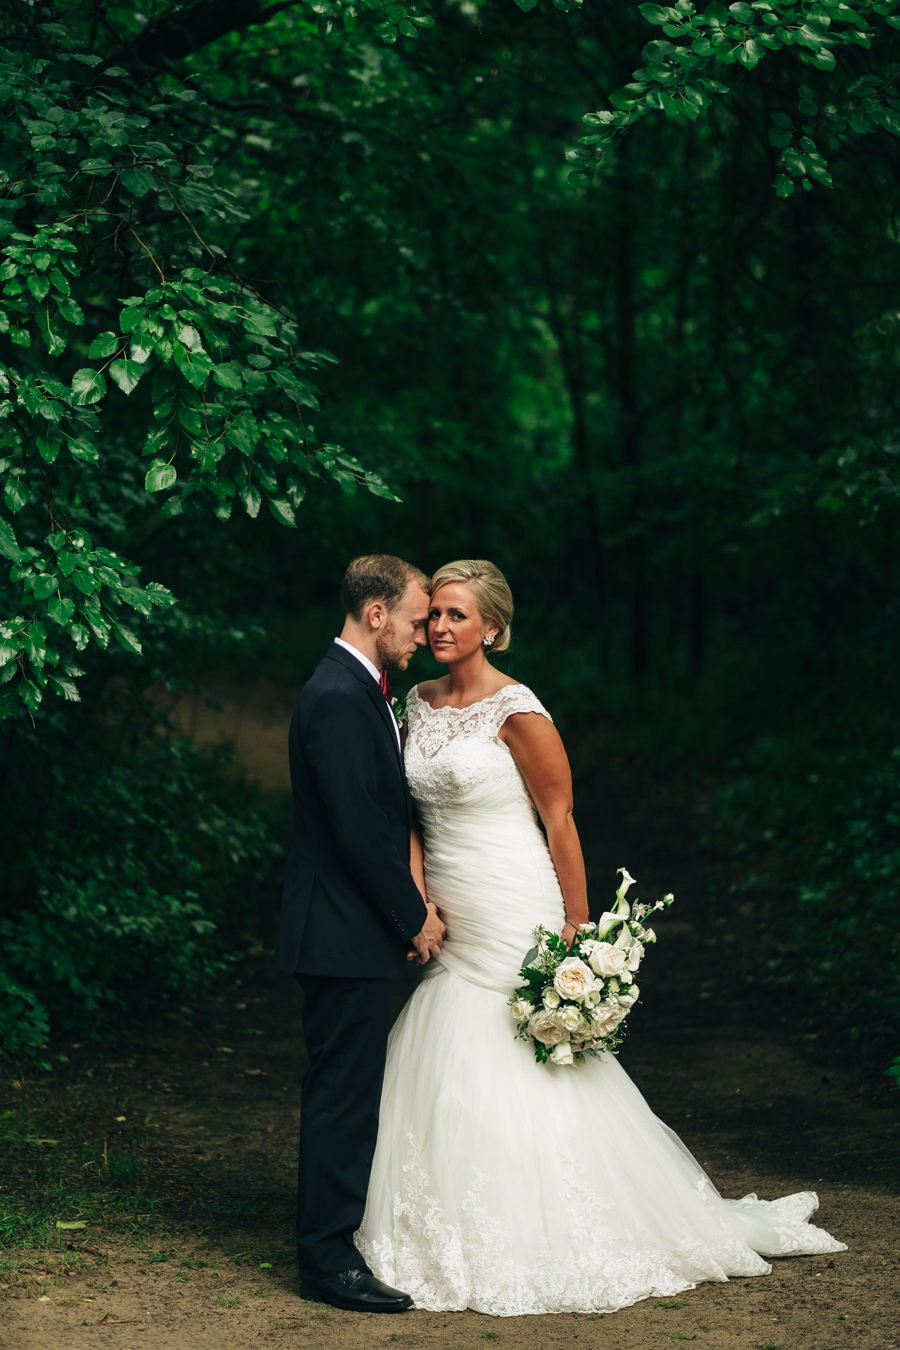 Bride and groom portrait at Wildwood Metropark In Toledo, Ohio.